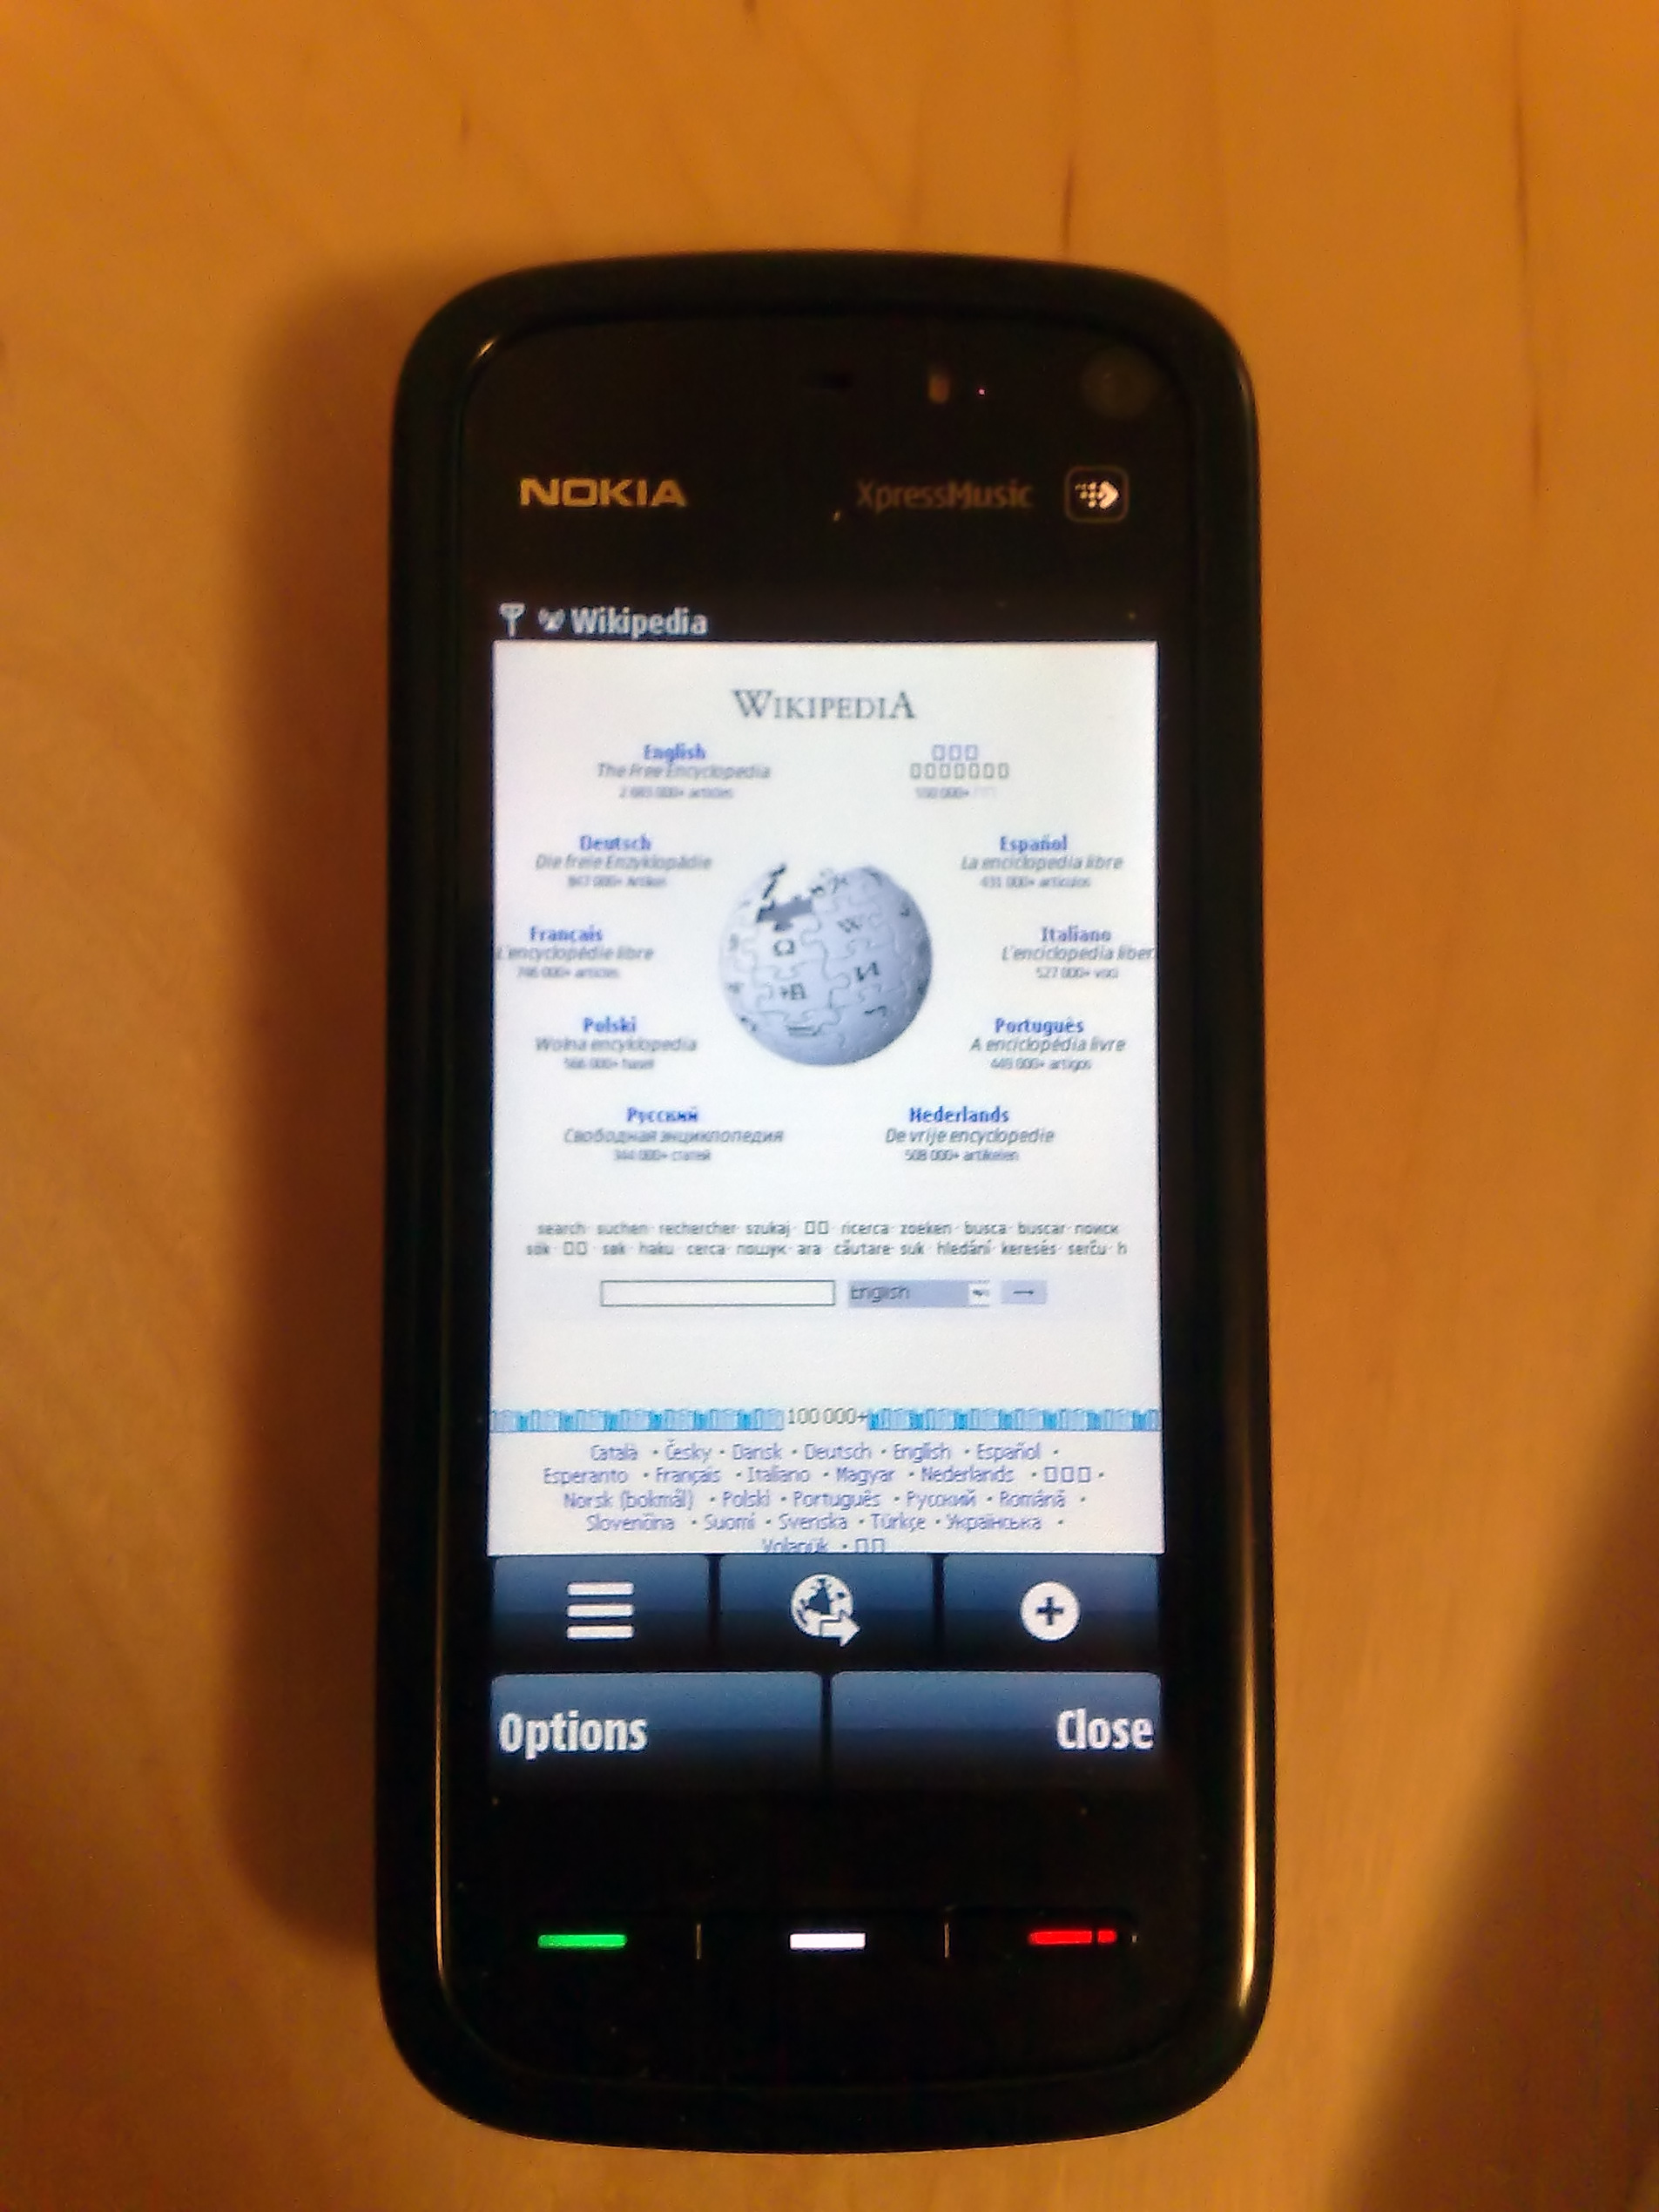 Nokia 5800 photo browser Cached